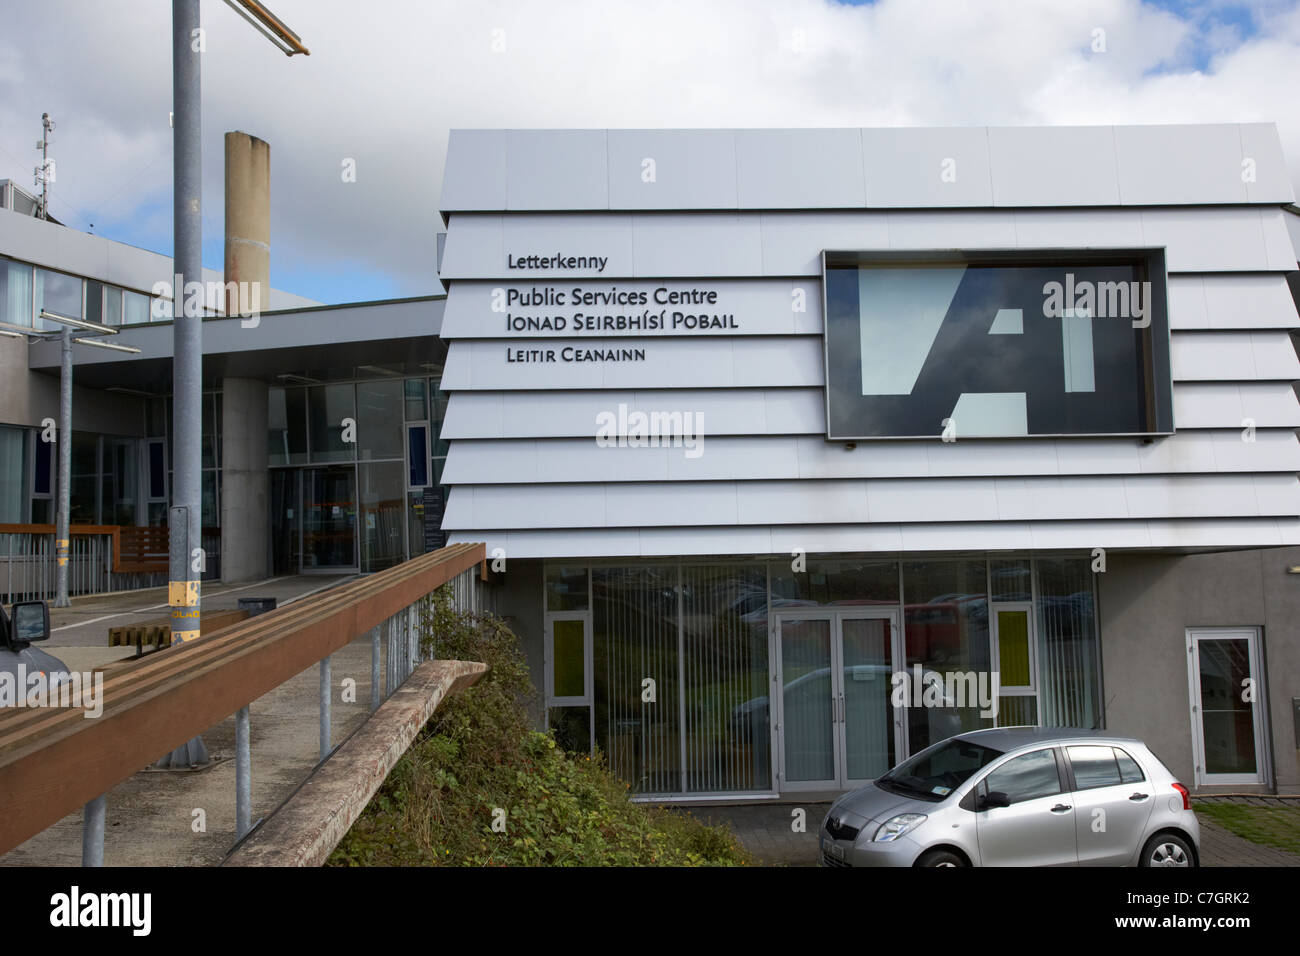 letterkenny public services centre town council offices county donegal county council building republic of ireland - Stock Image